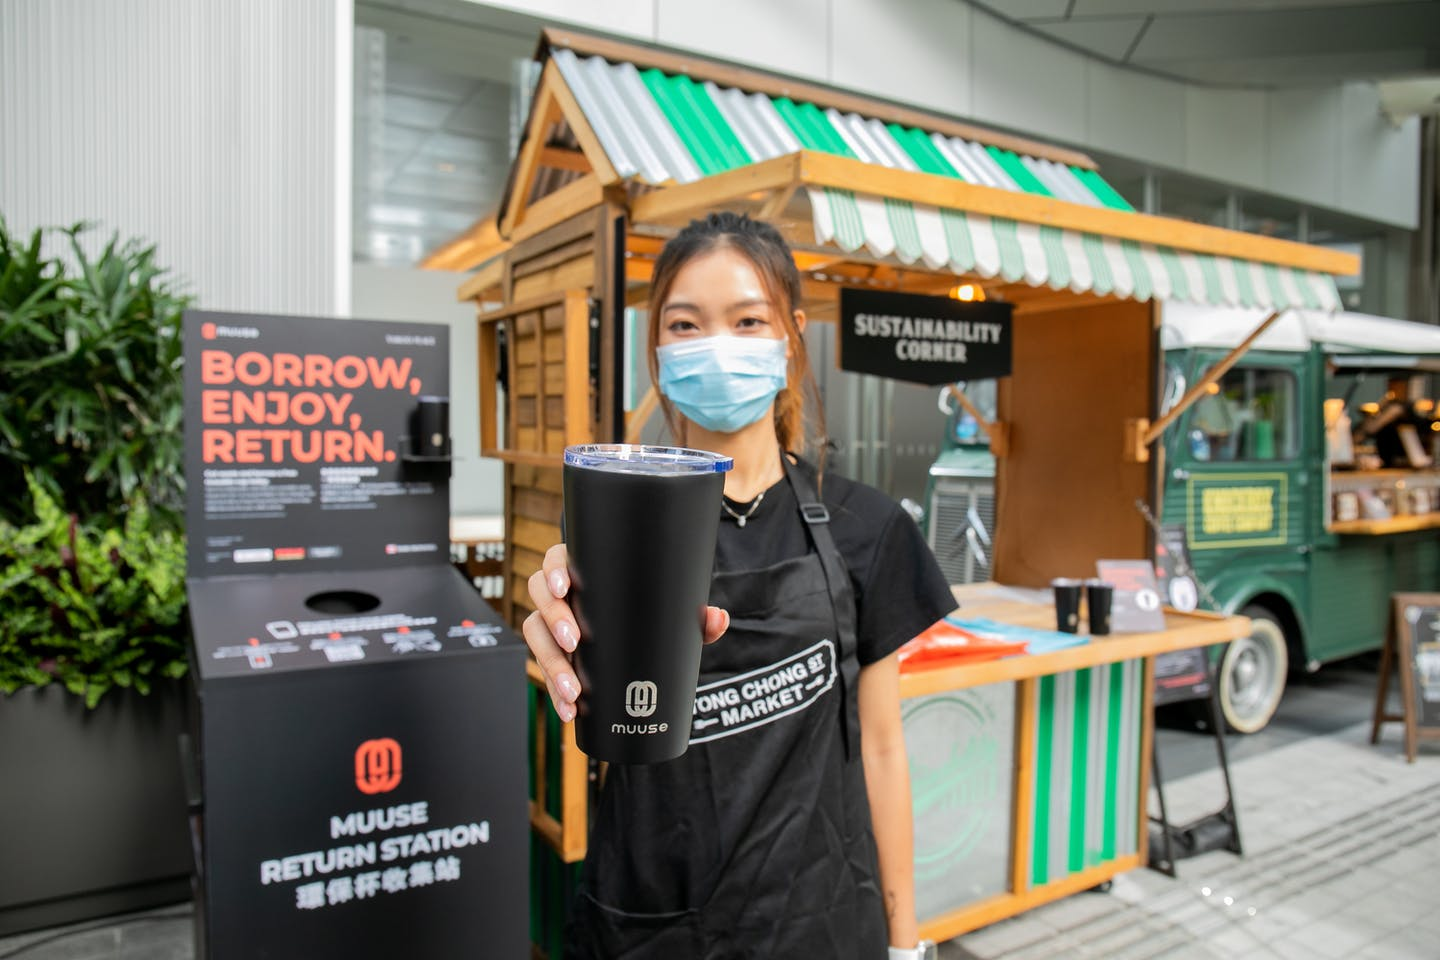 A Muuse reusable cup in use in Hong Kong during the Covid-19 pandemic. A rent and return trial has been running in the business cluster, Taikoo Place. Image: Muuse